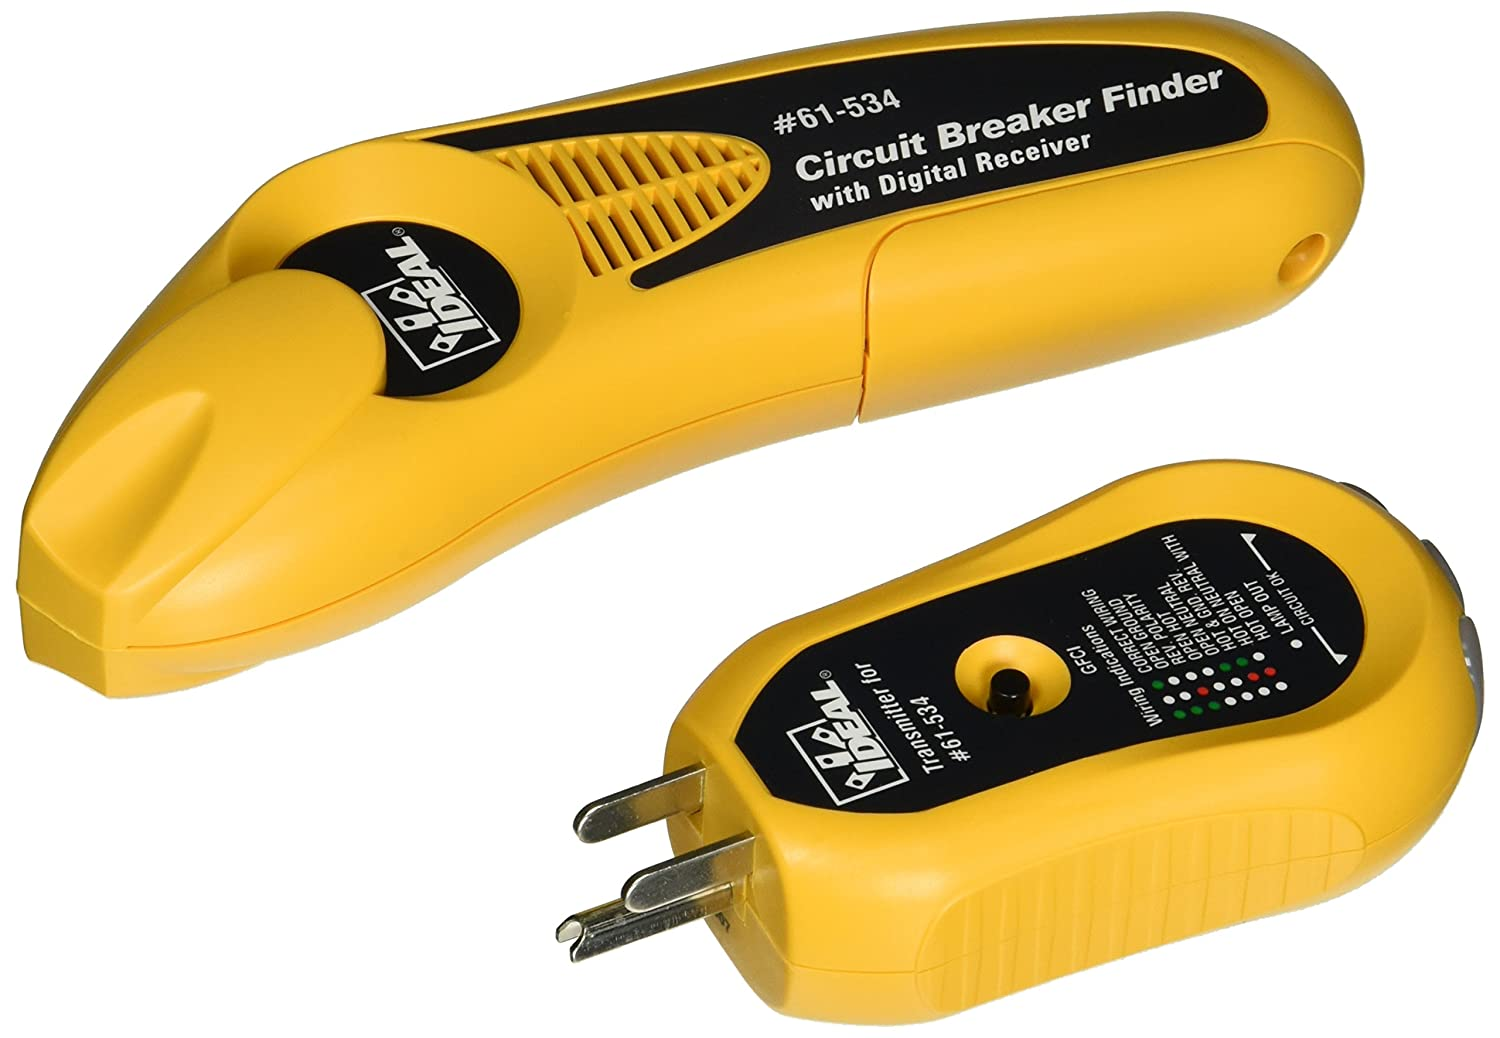 IDEAL 61-534 Digital Circuit Breaker Finder with Digital Receiver and GFCI Circuit Tester